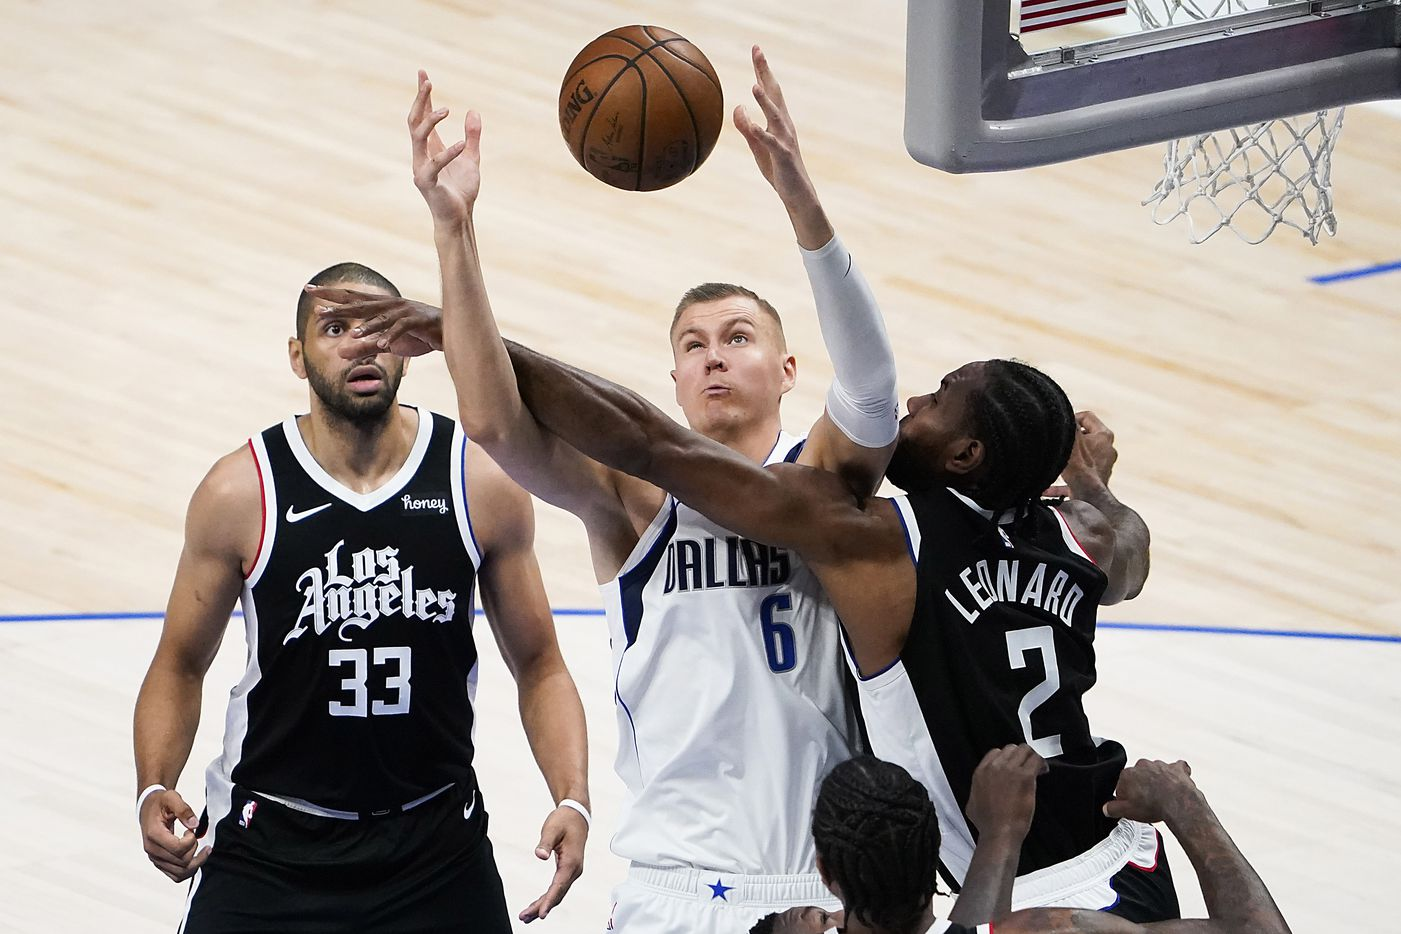 Dallas Mavericks center Kristaps Porzingis (6) fight for a rebound against LA Clippers forward Kawhi Leonard (2) and forward Nicolas Batum (33) during the first quarter of an NBA playoff basketball game at American Airlines Center on Sunday, May 30, 2021, in Dallas. (Smiley N. Pool/The Dallas Morning News)